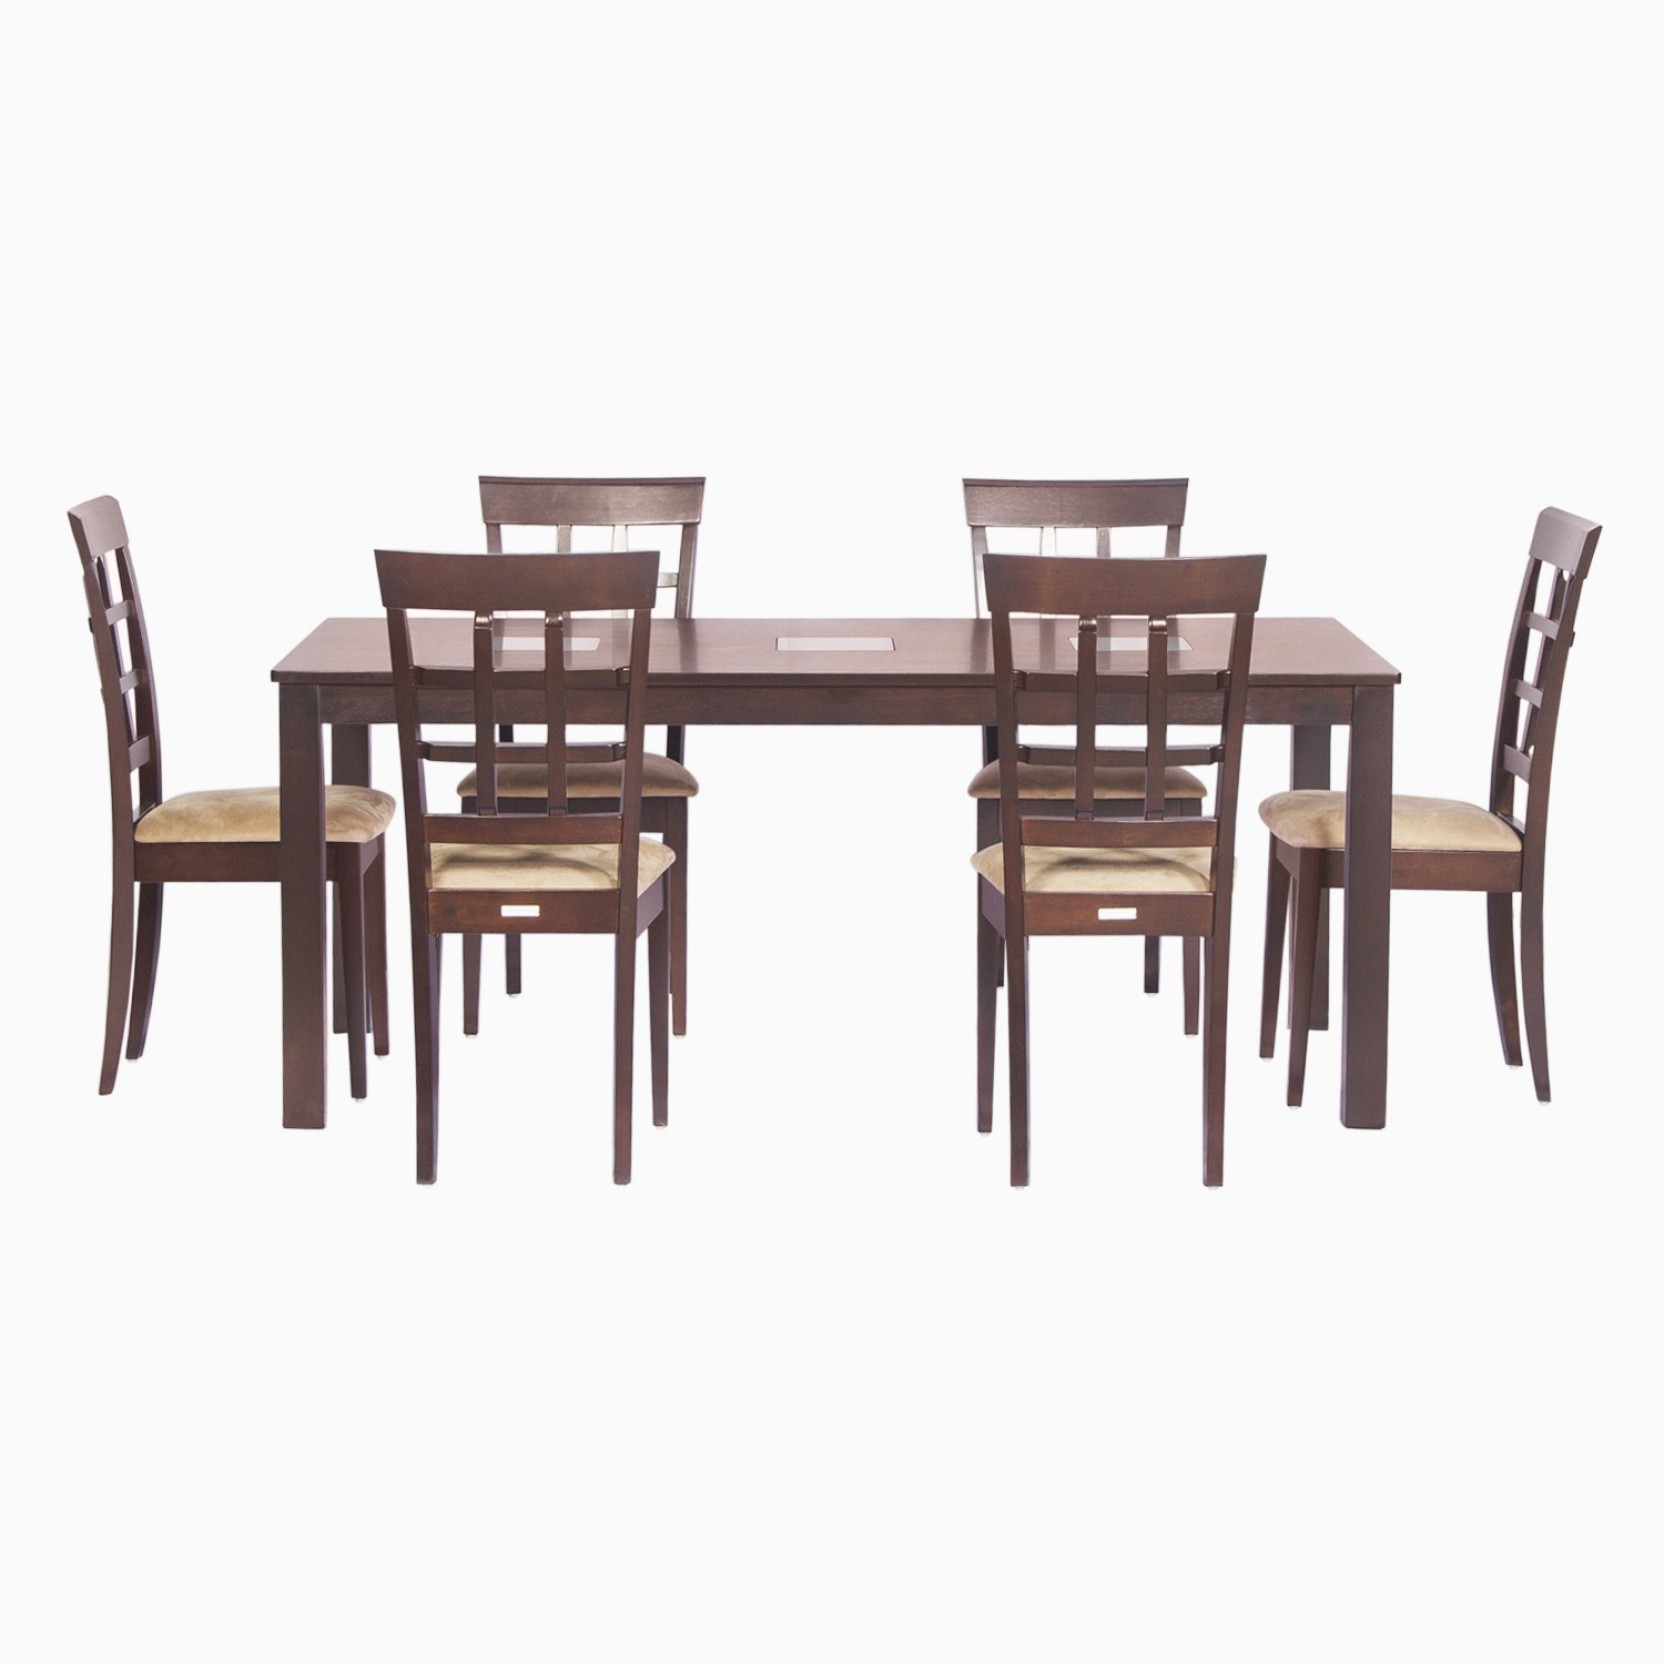 Godrej Interio Leo amp Lisa Dining Set Solid Wood 6 Seater  : leo lisa dinning set 6 seater rubber wood godrej interio beige original imaegwnazqhv5uak from www.flipkart.com size 1664 x 1664 jpeg 152kB